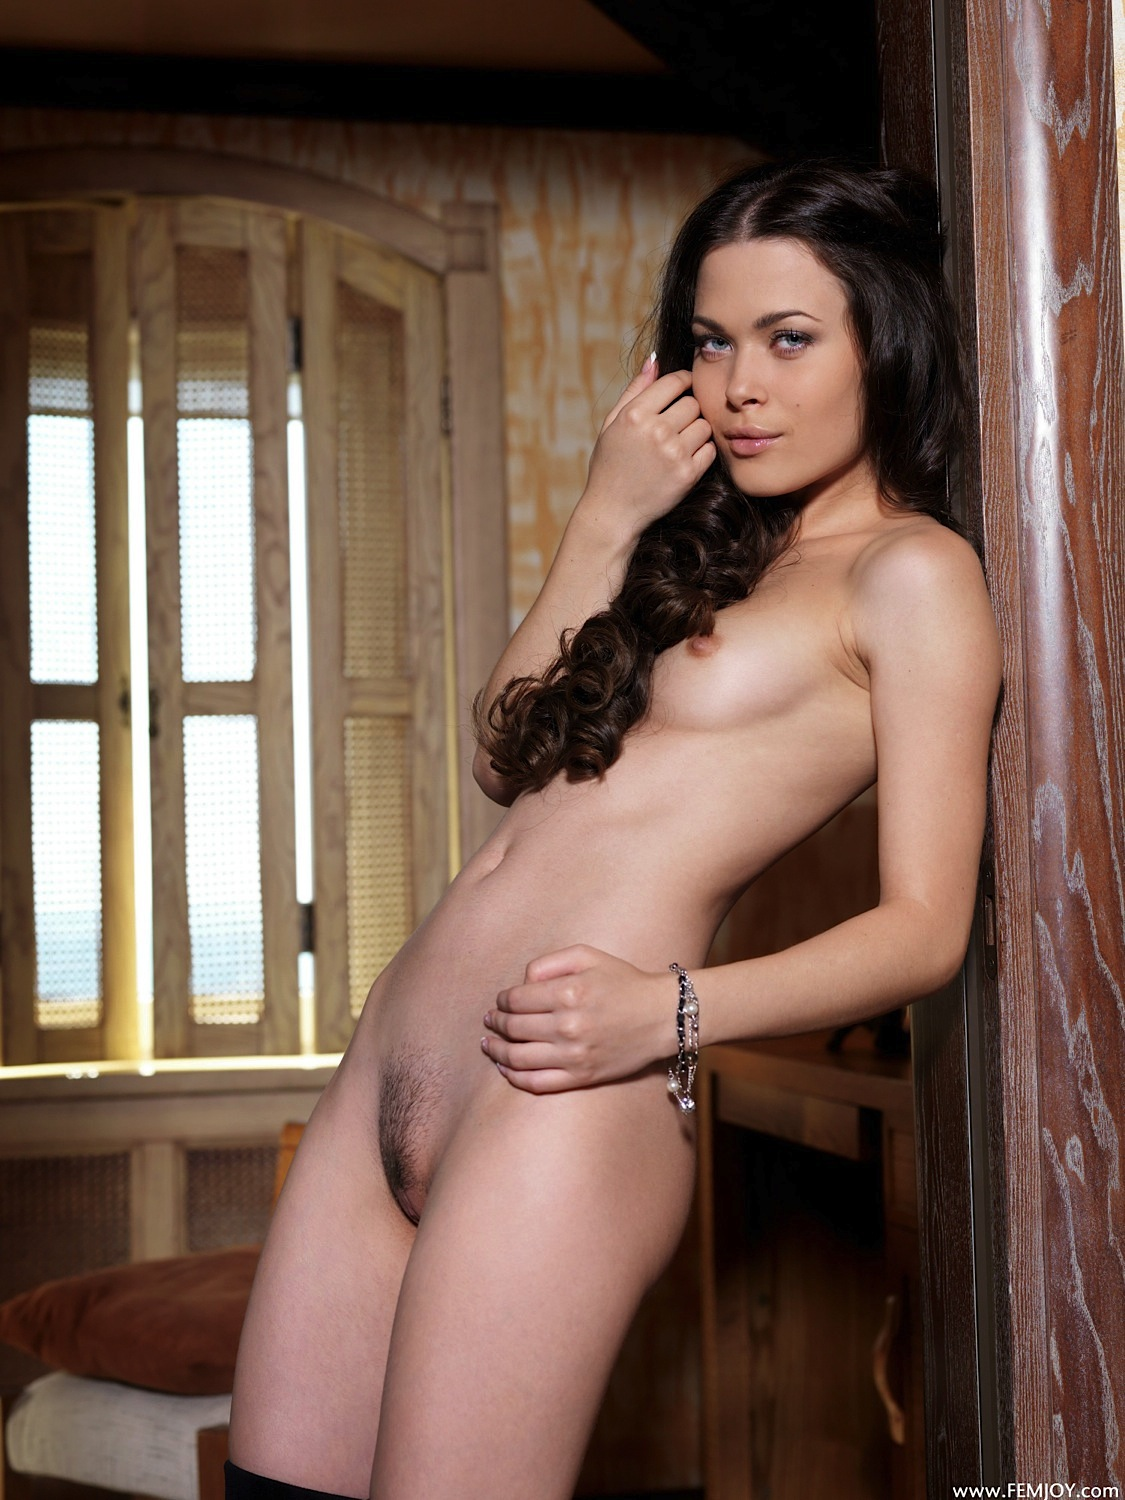 100 Images of Amelie Nude